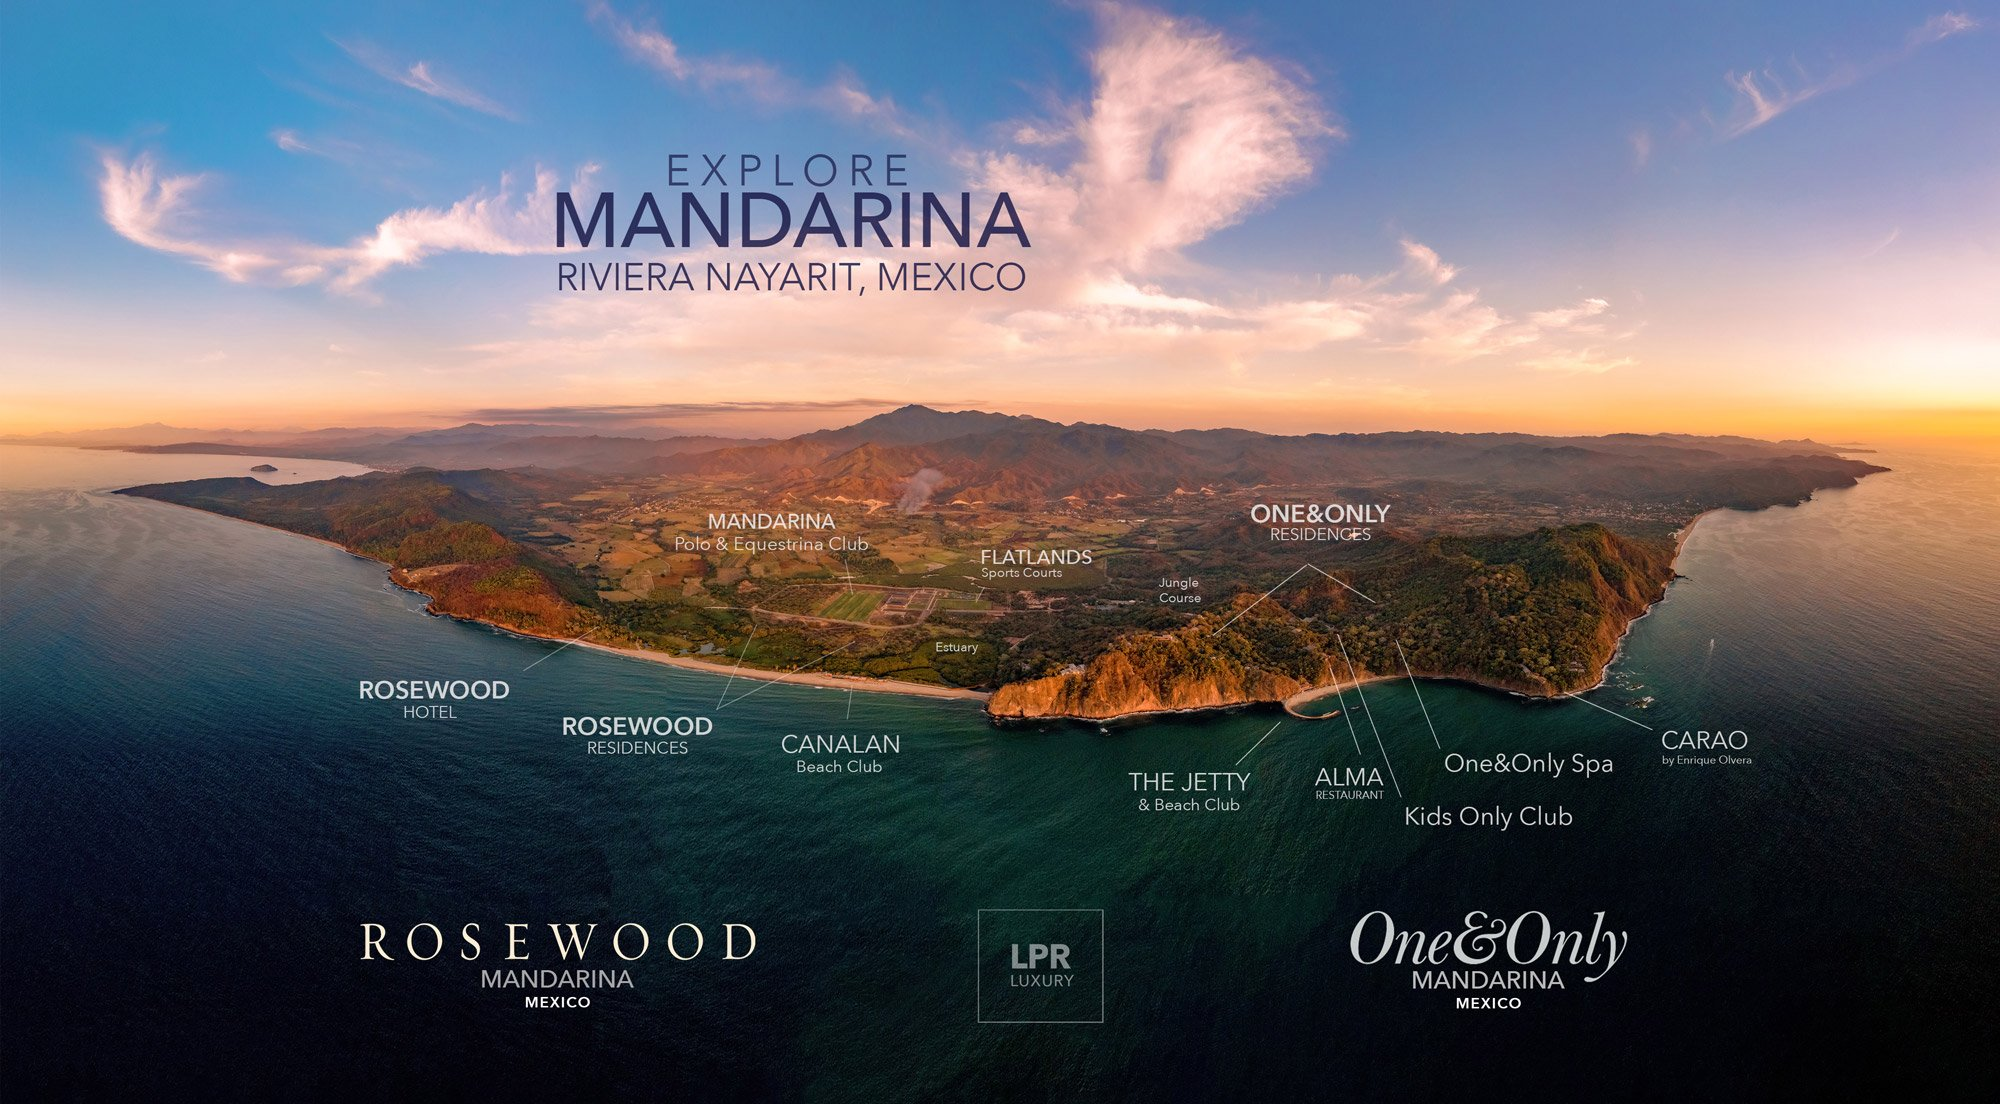 The Private Homes at One&Only Mandarina, Riviera Nayarit, Mexico - Luxury resort real estate in Mexico.